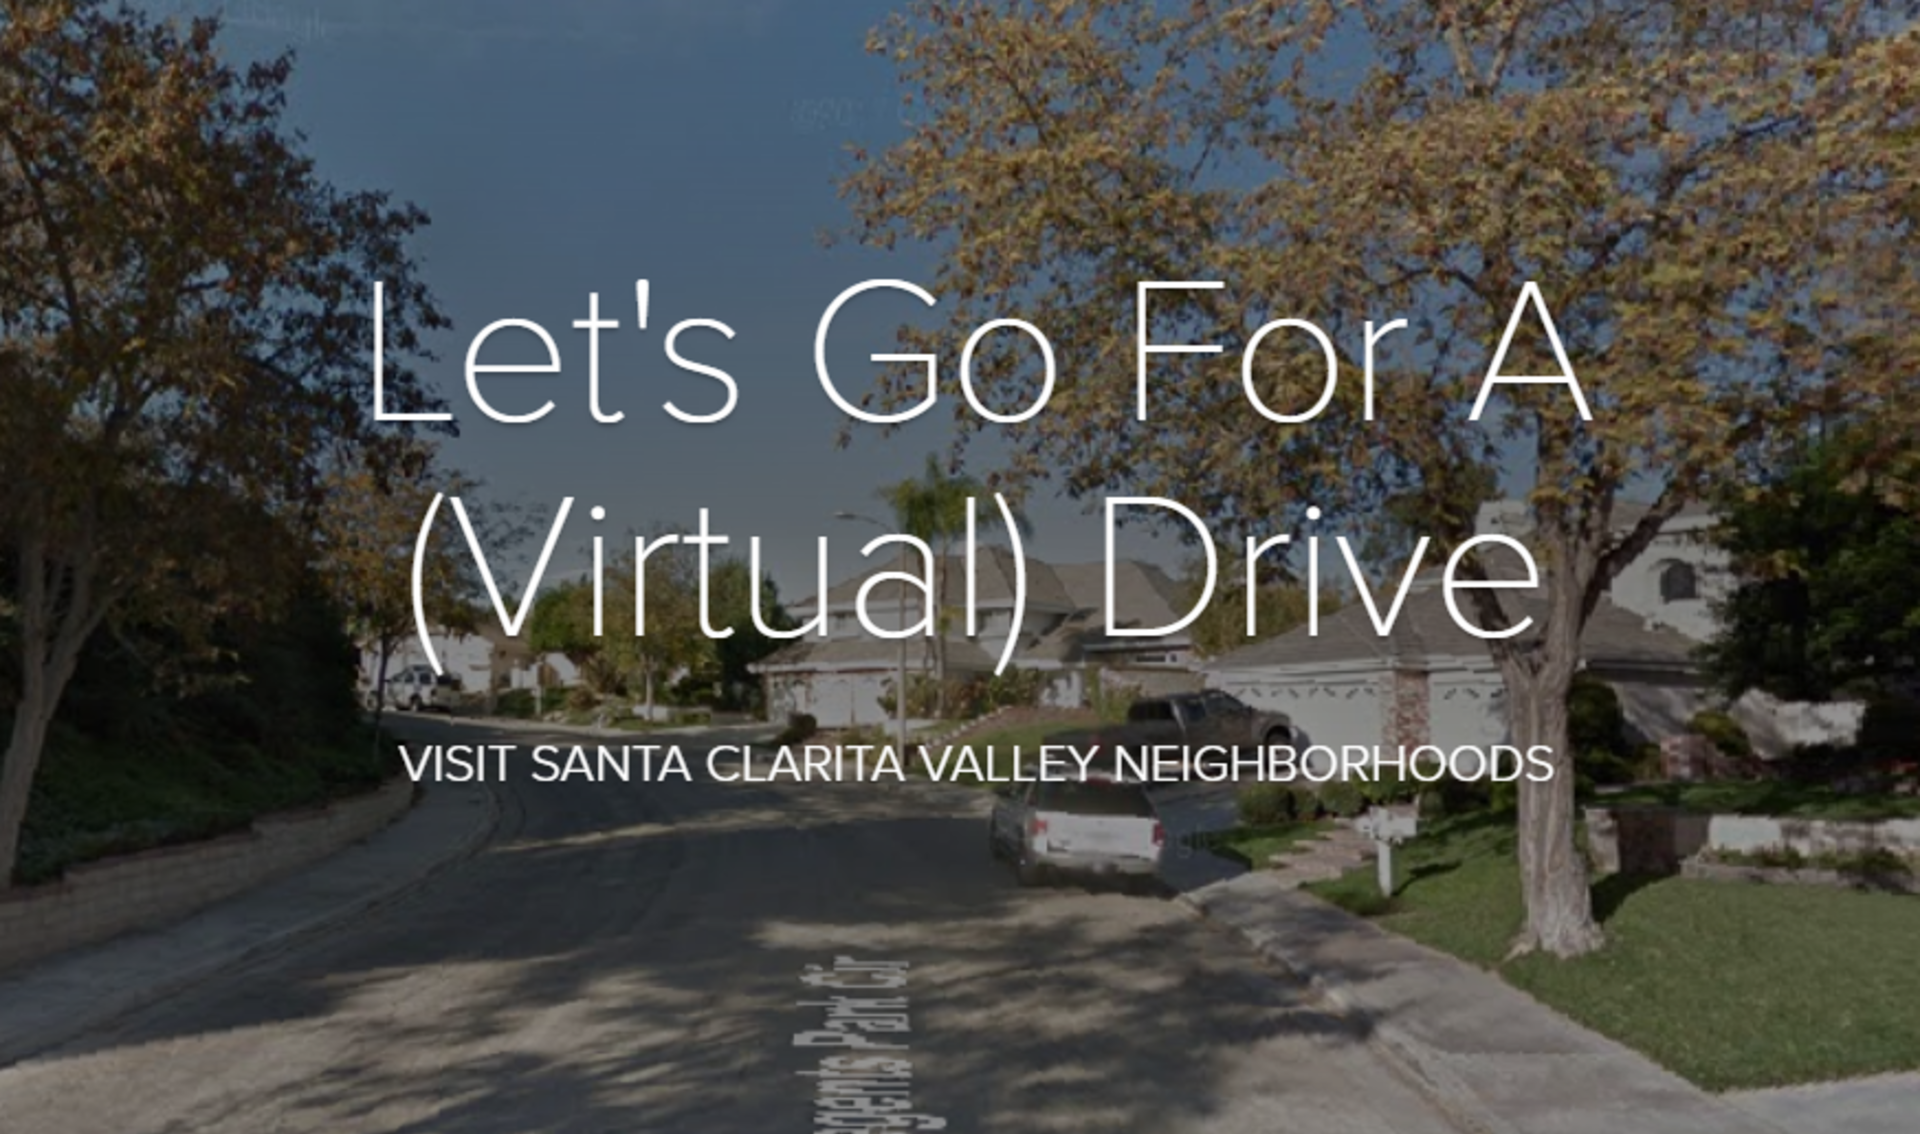 Lets Go For A (Virtual) Drive In Santa Clarita